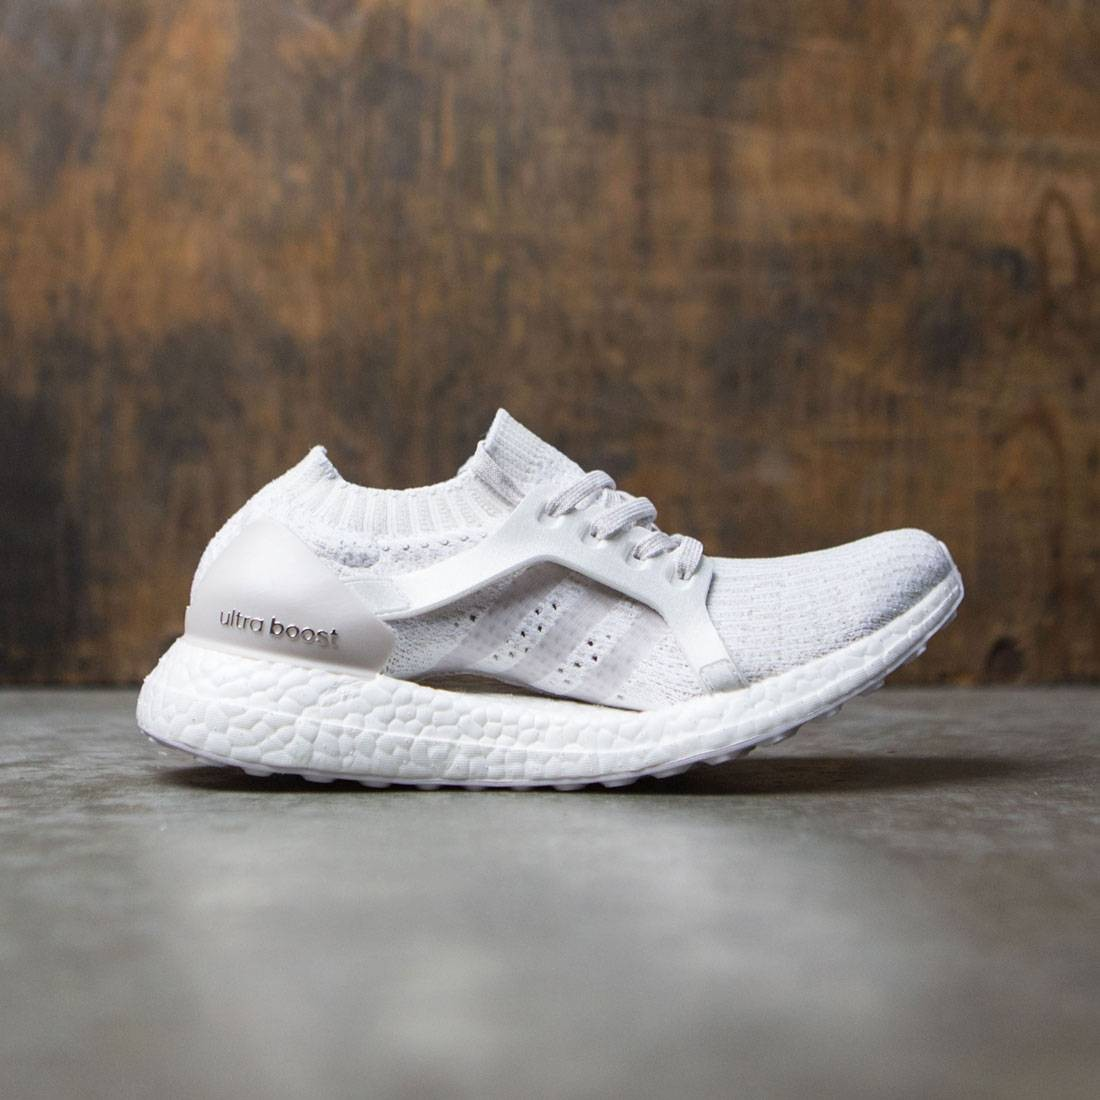 Ultra Boost (White Pearl Grey) White 8